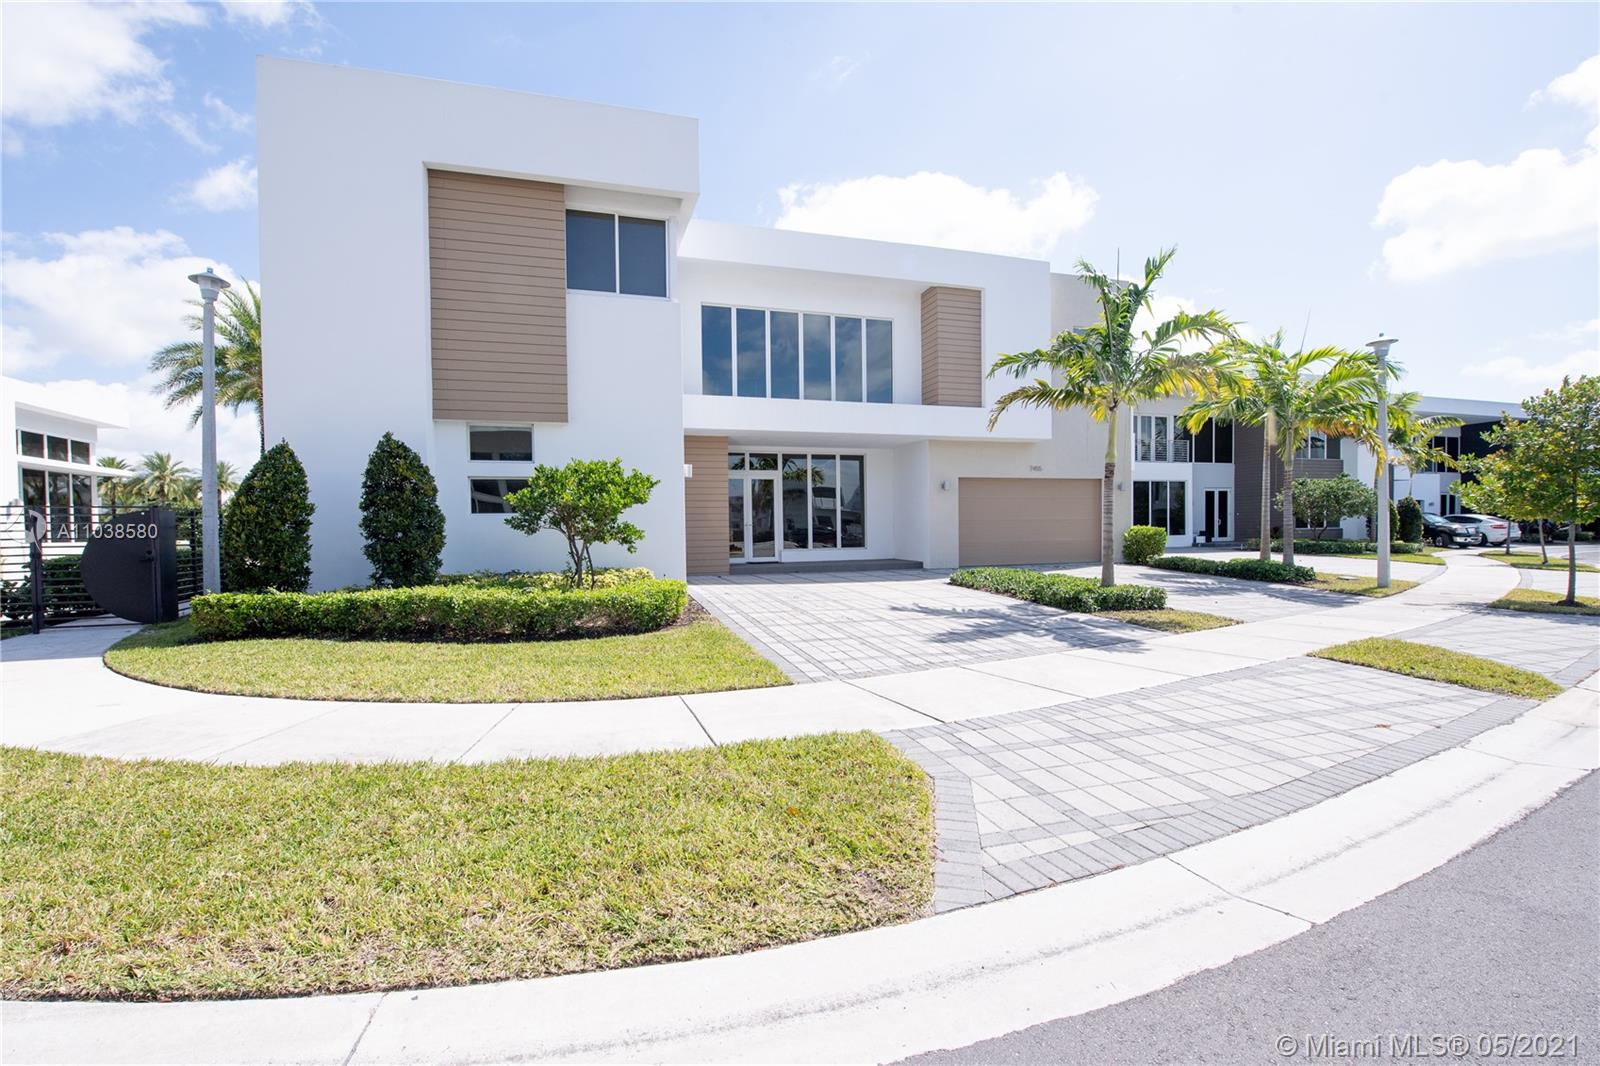 Doral Commons Residential - 7455 NW 102nd Ct, Doral, FL 33178